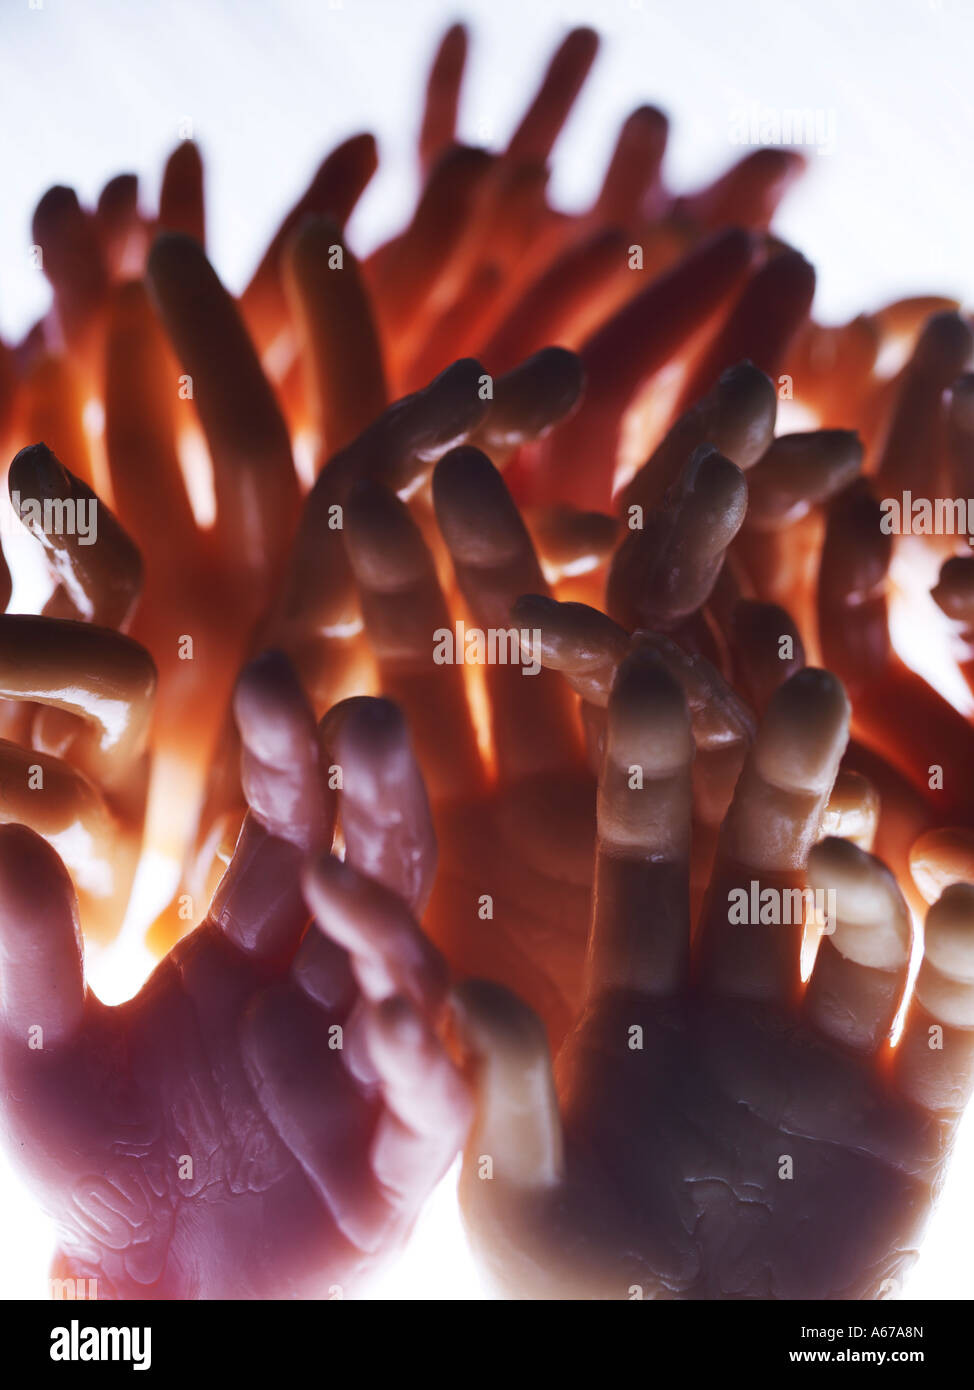 hands reaching together - Stock Image